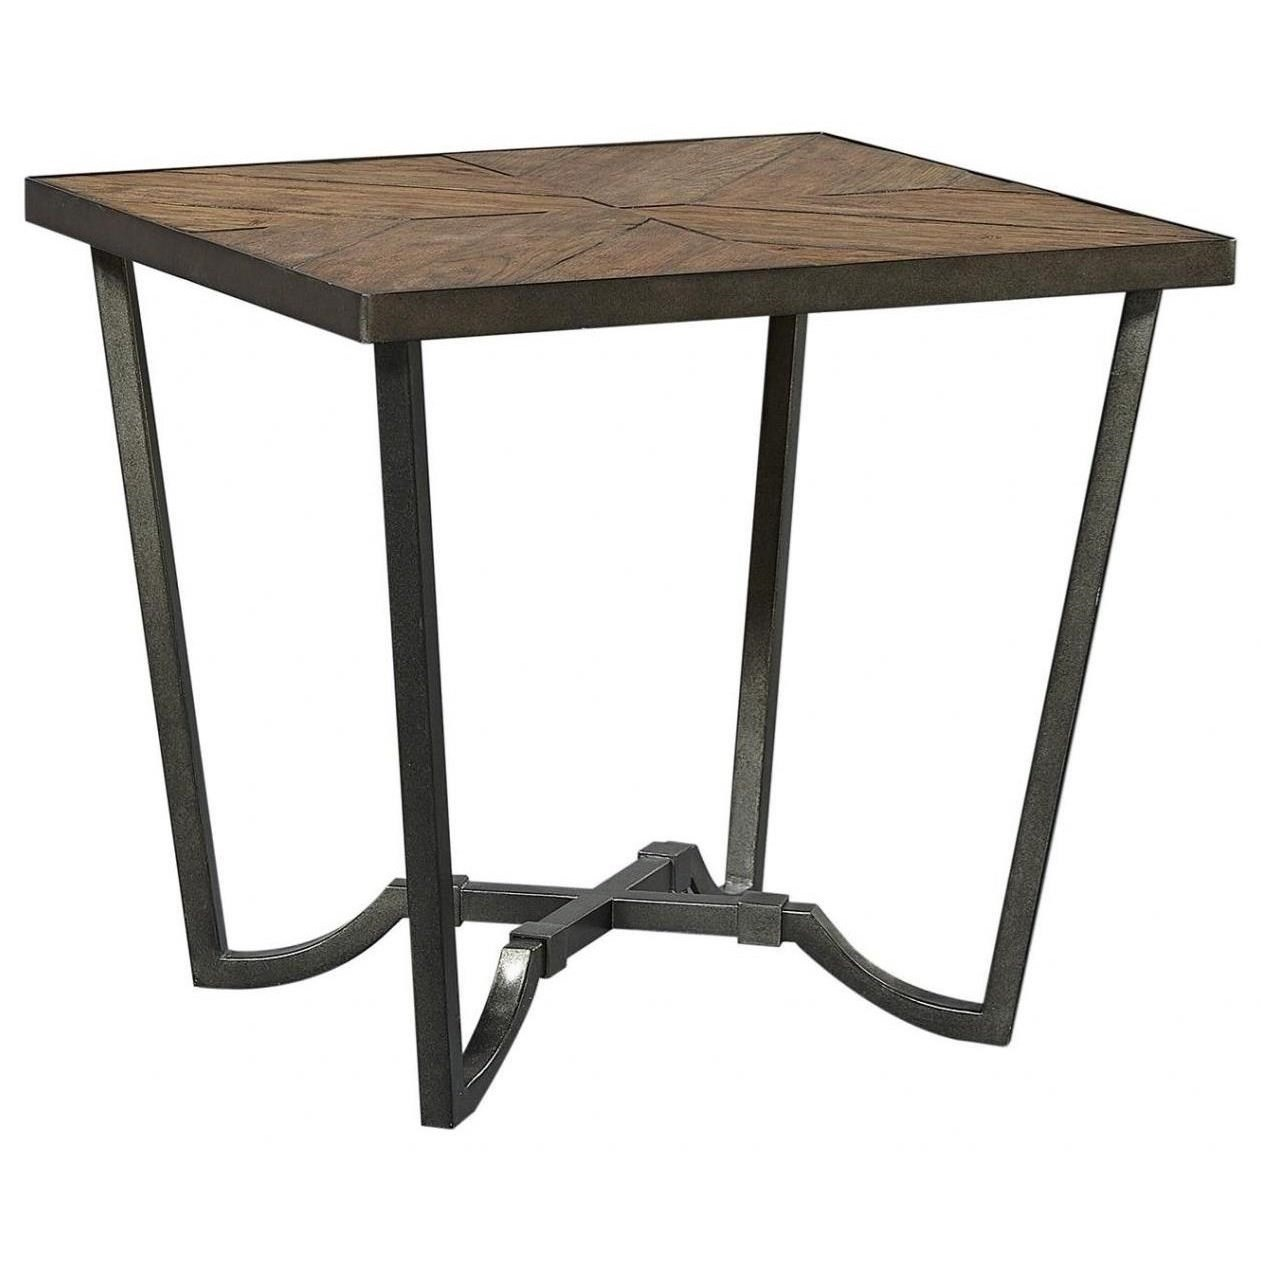 Transitional End Table with Wood Top